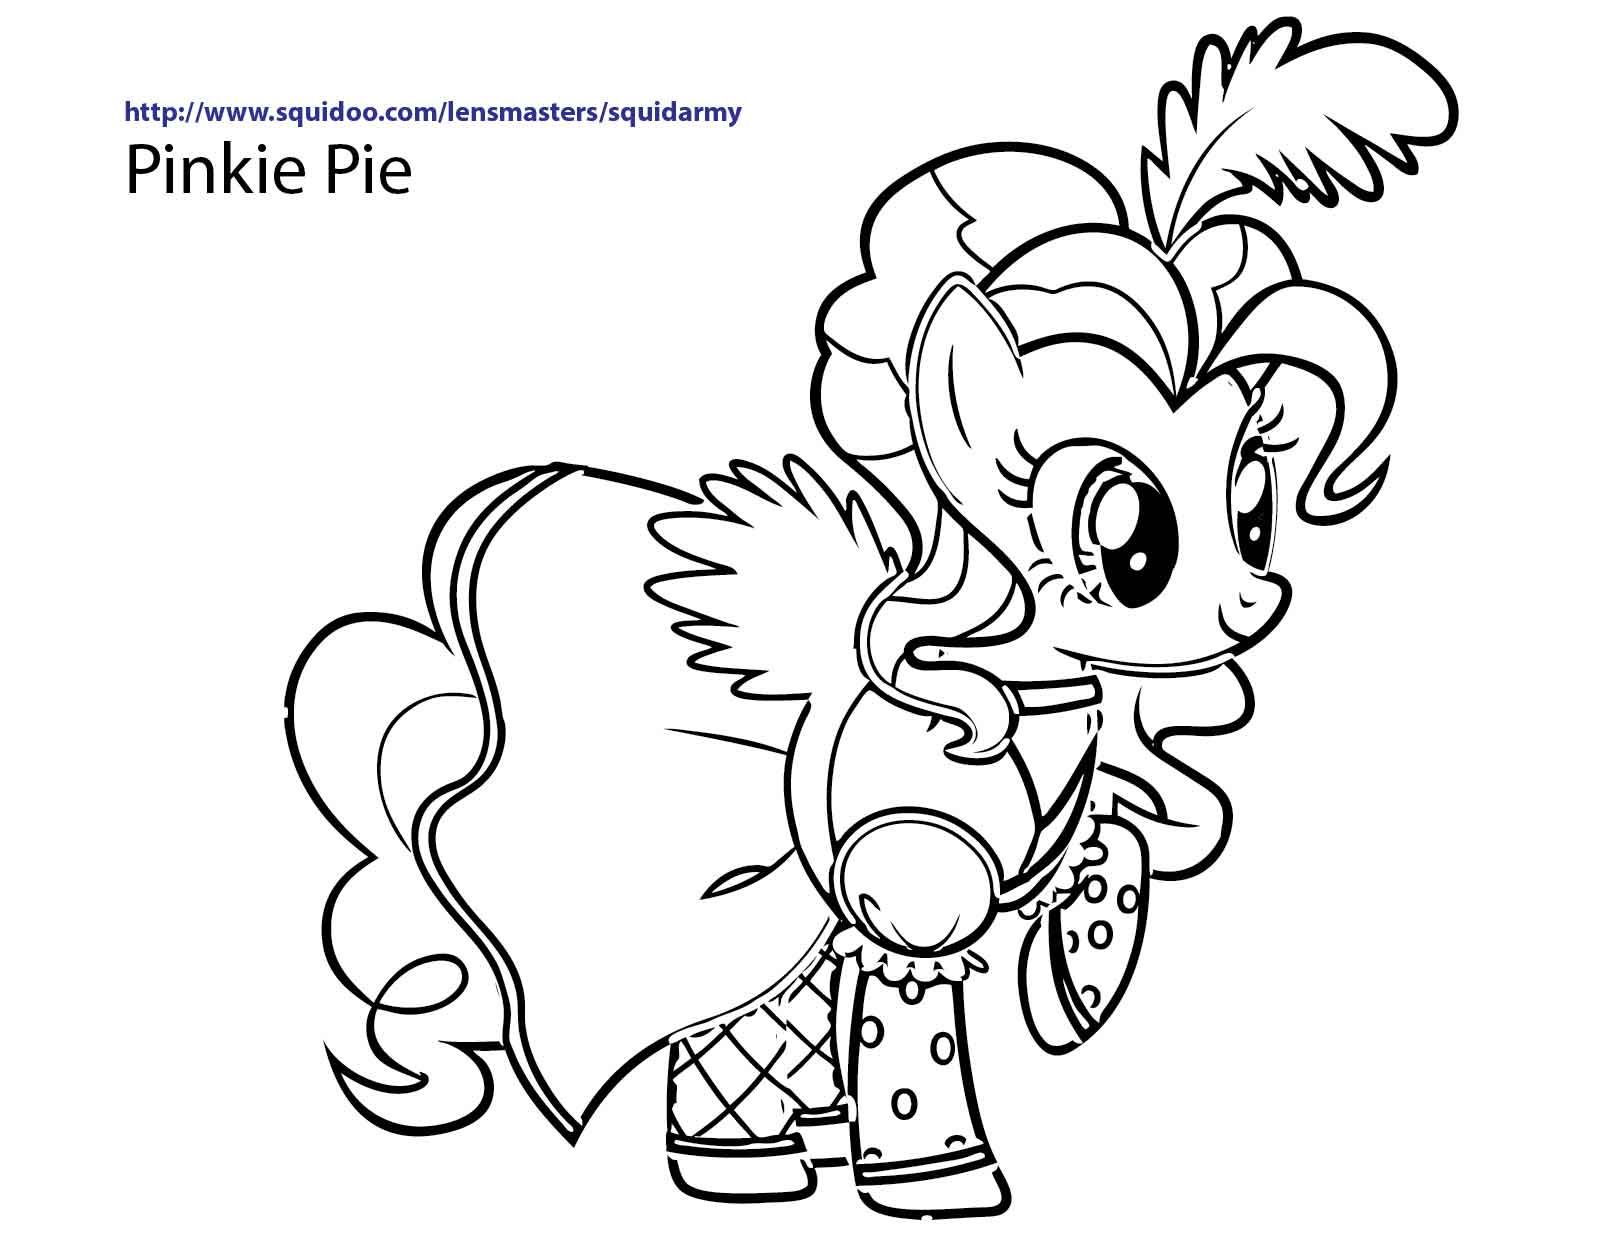 Uncategorized My Little Pony Online Coloring Pages 39 best my little pony images on pinterest crafts dream wedding pinkie pie full style coloring pages kidsdrawing free pages